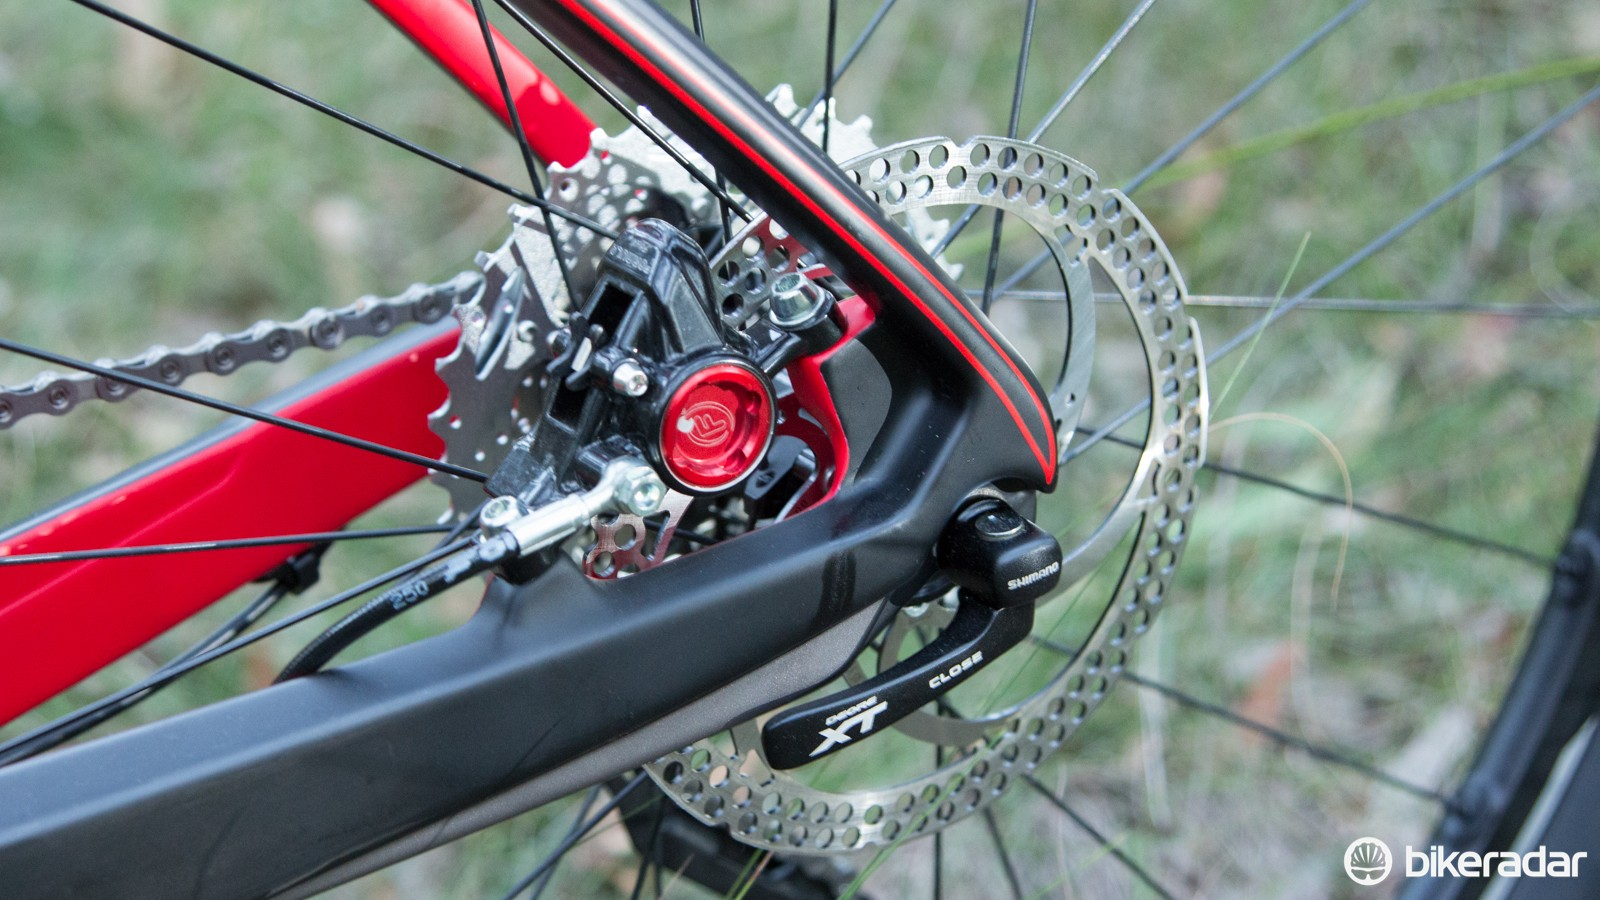 BH's EVO brake mount is designed to improve braking performance without affecting ride quality